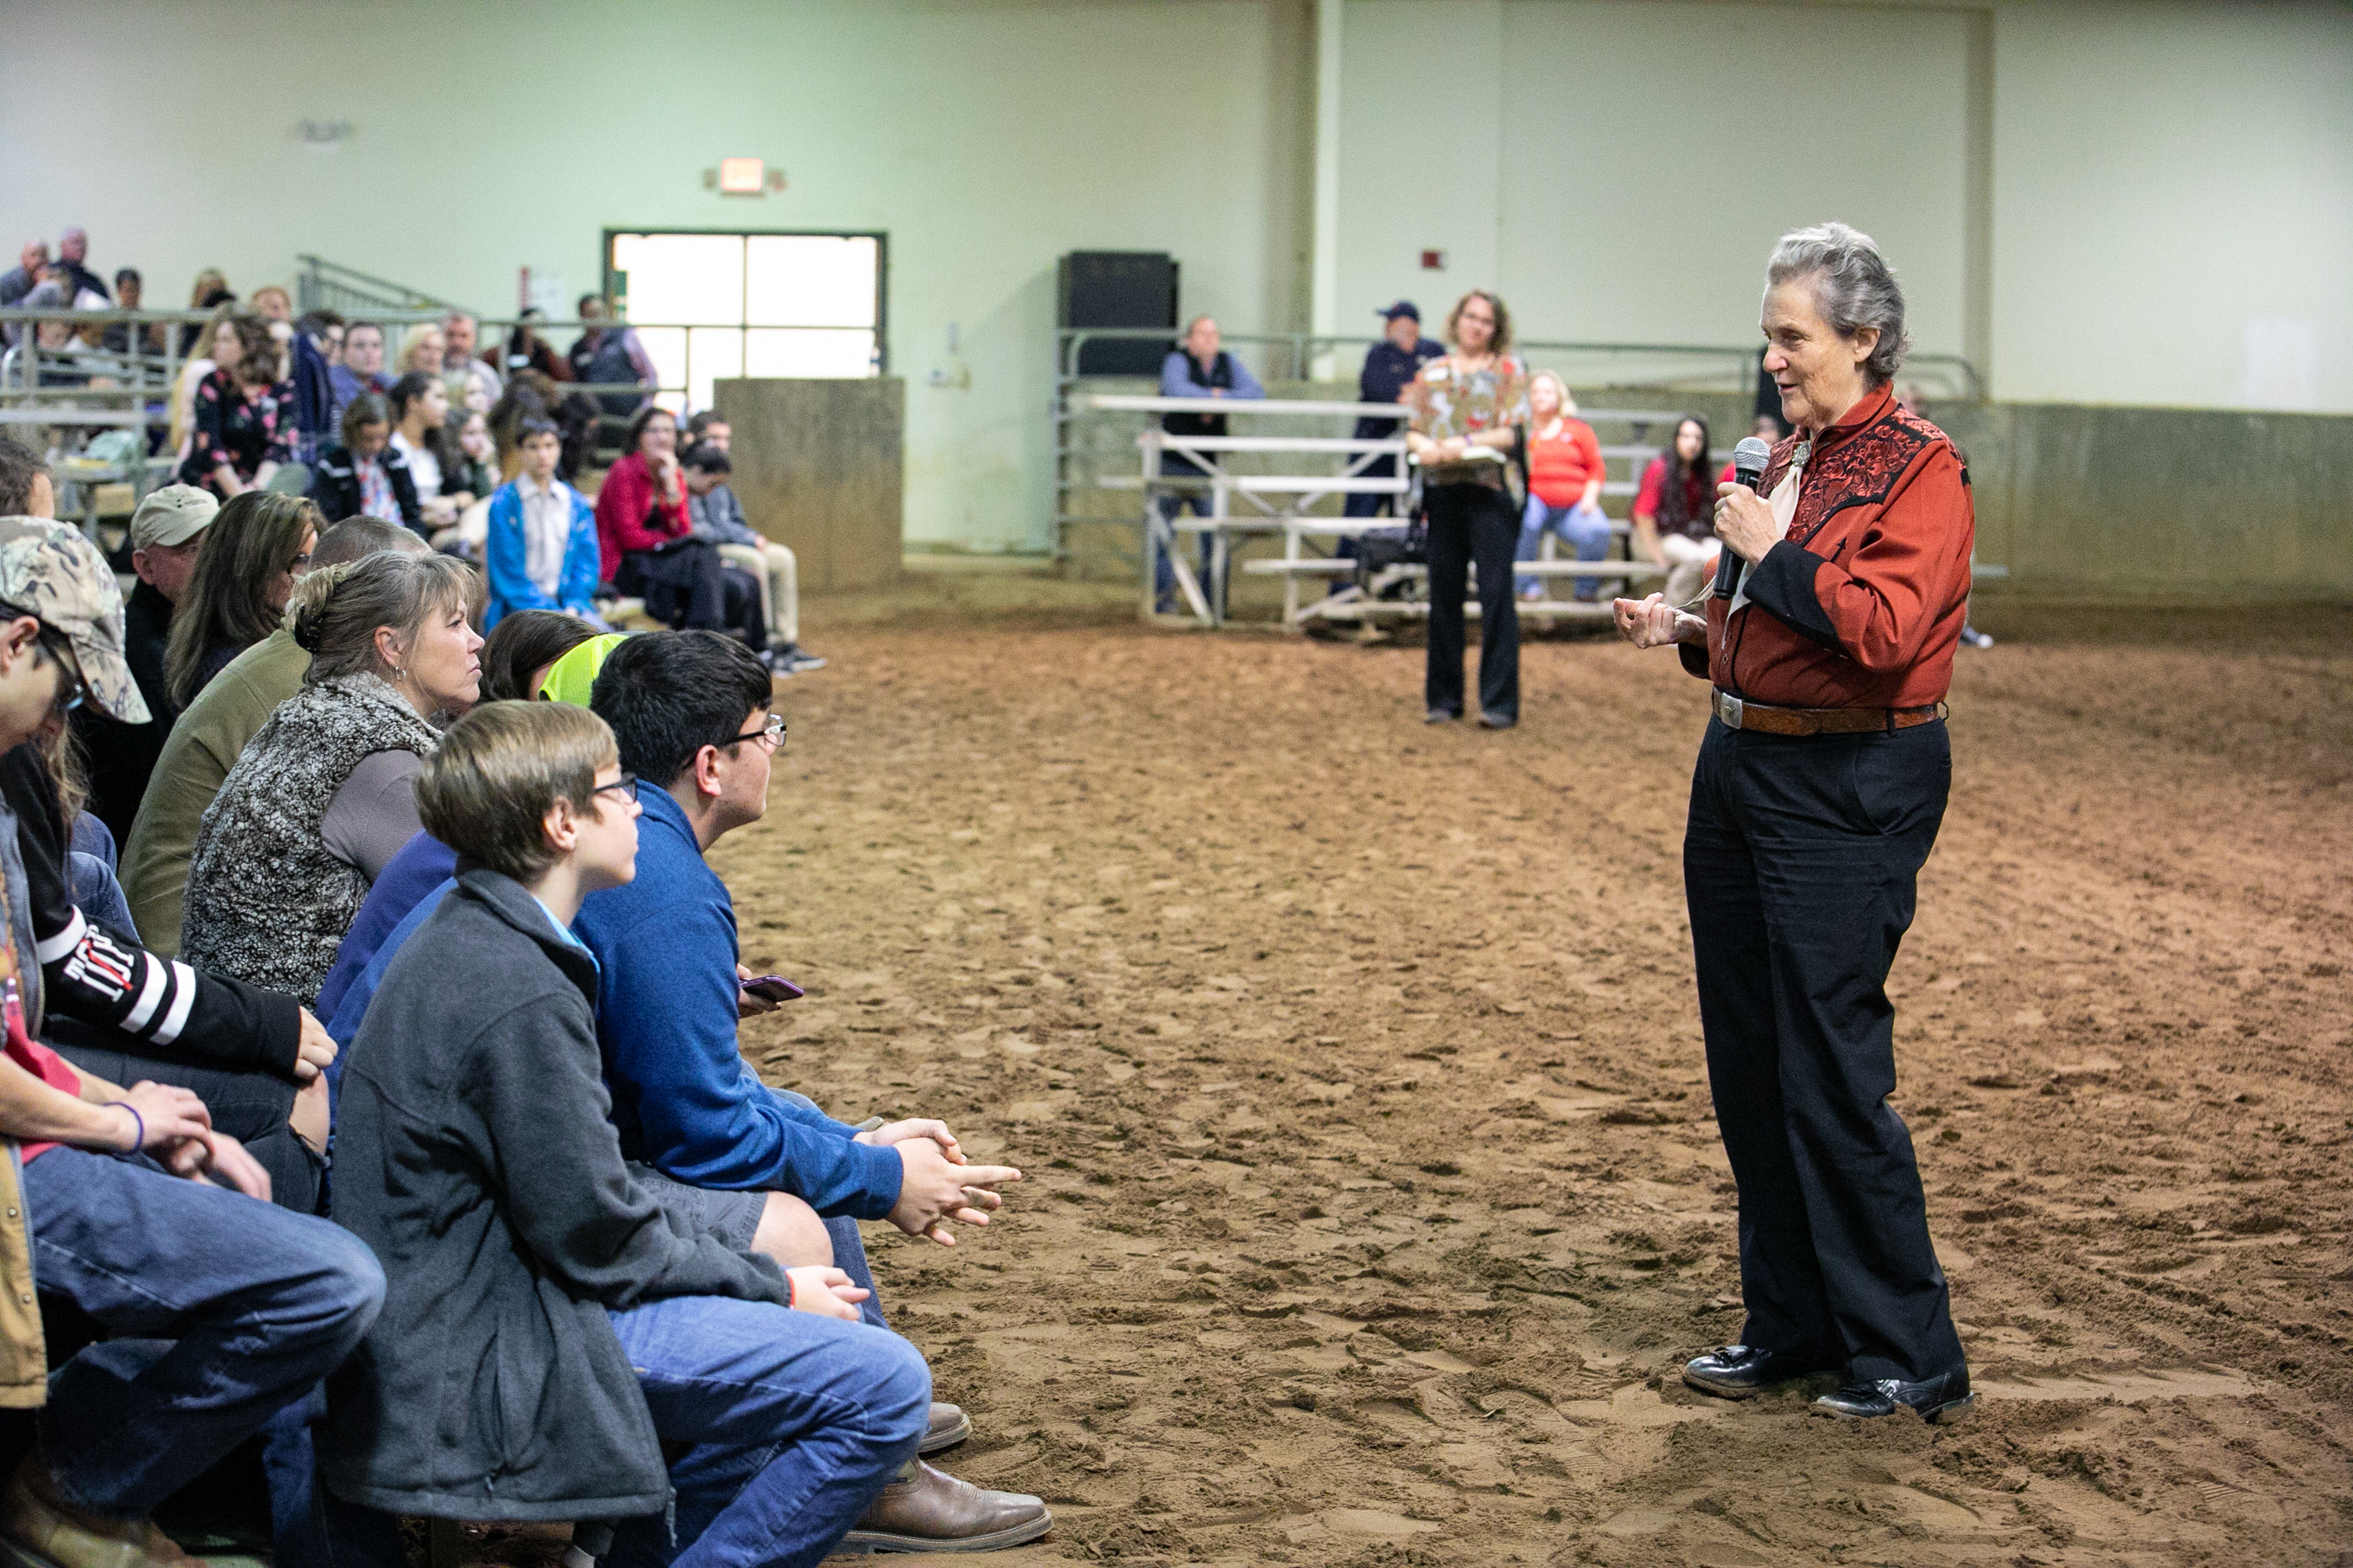 Temple Grandin, world-renowned animal agriculture consultant and advocate for the autism community, spoke to a crowd of about 400 Georgia 4-H club members and supporters on Dec. 4, 2018, at the UGA Livestock Arena. The event was hosted by Jackson County 4-H.